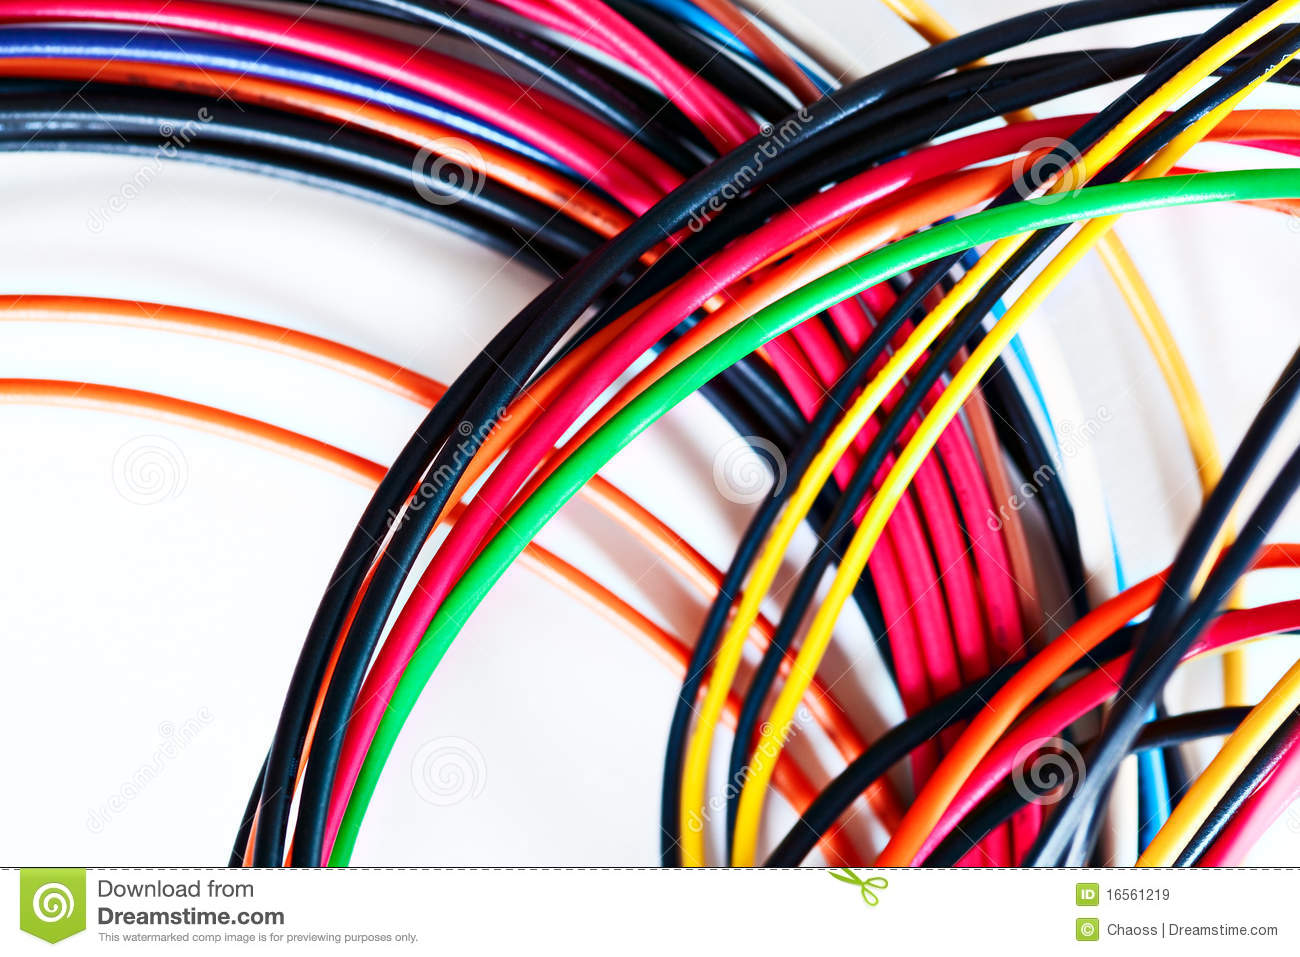 Computer power wires